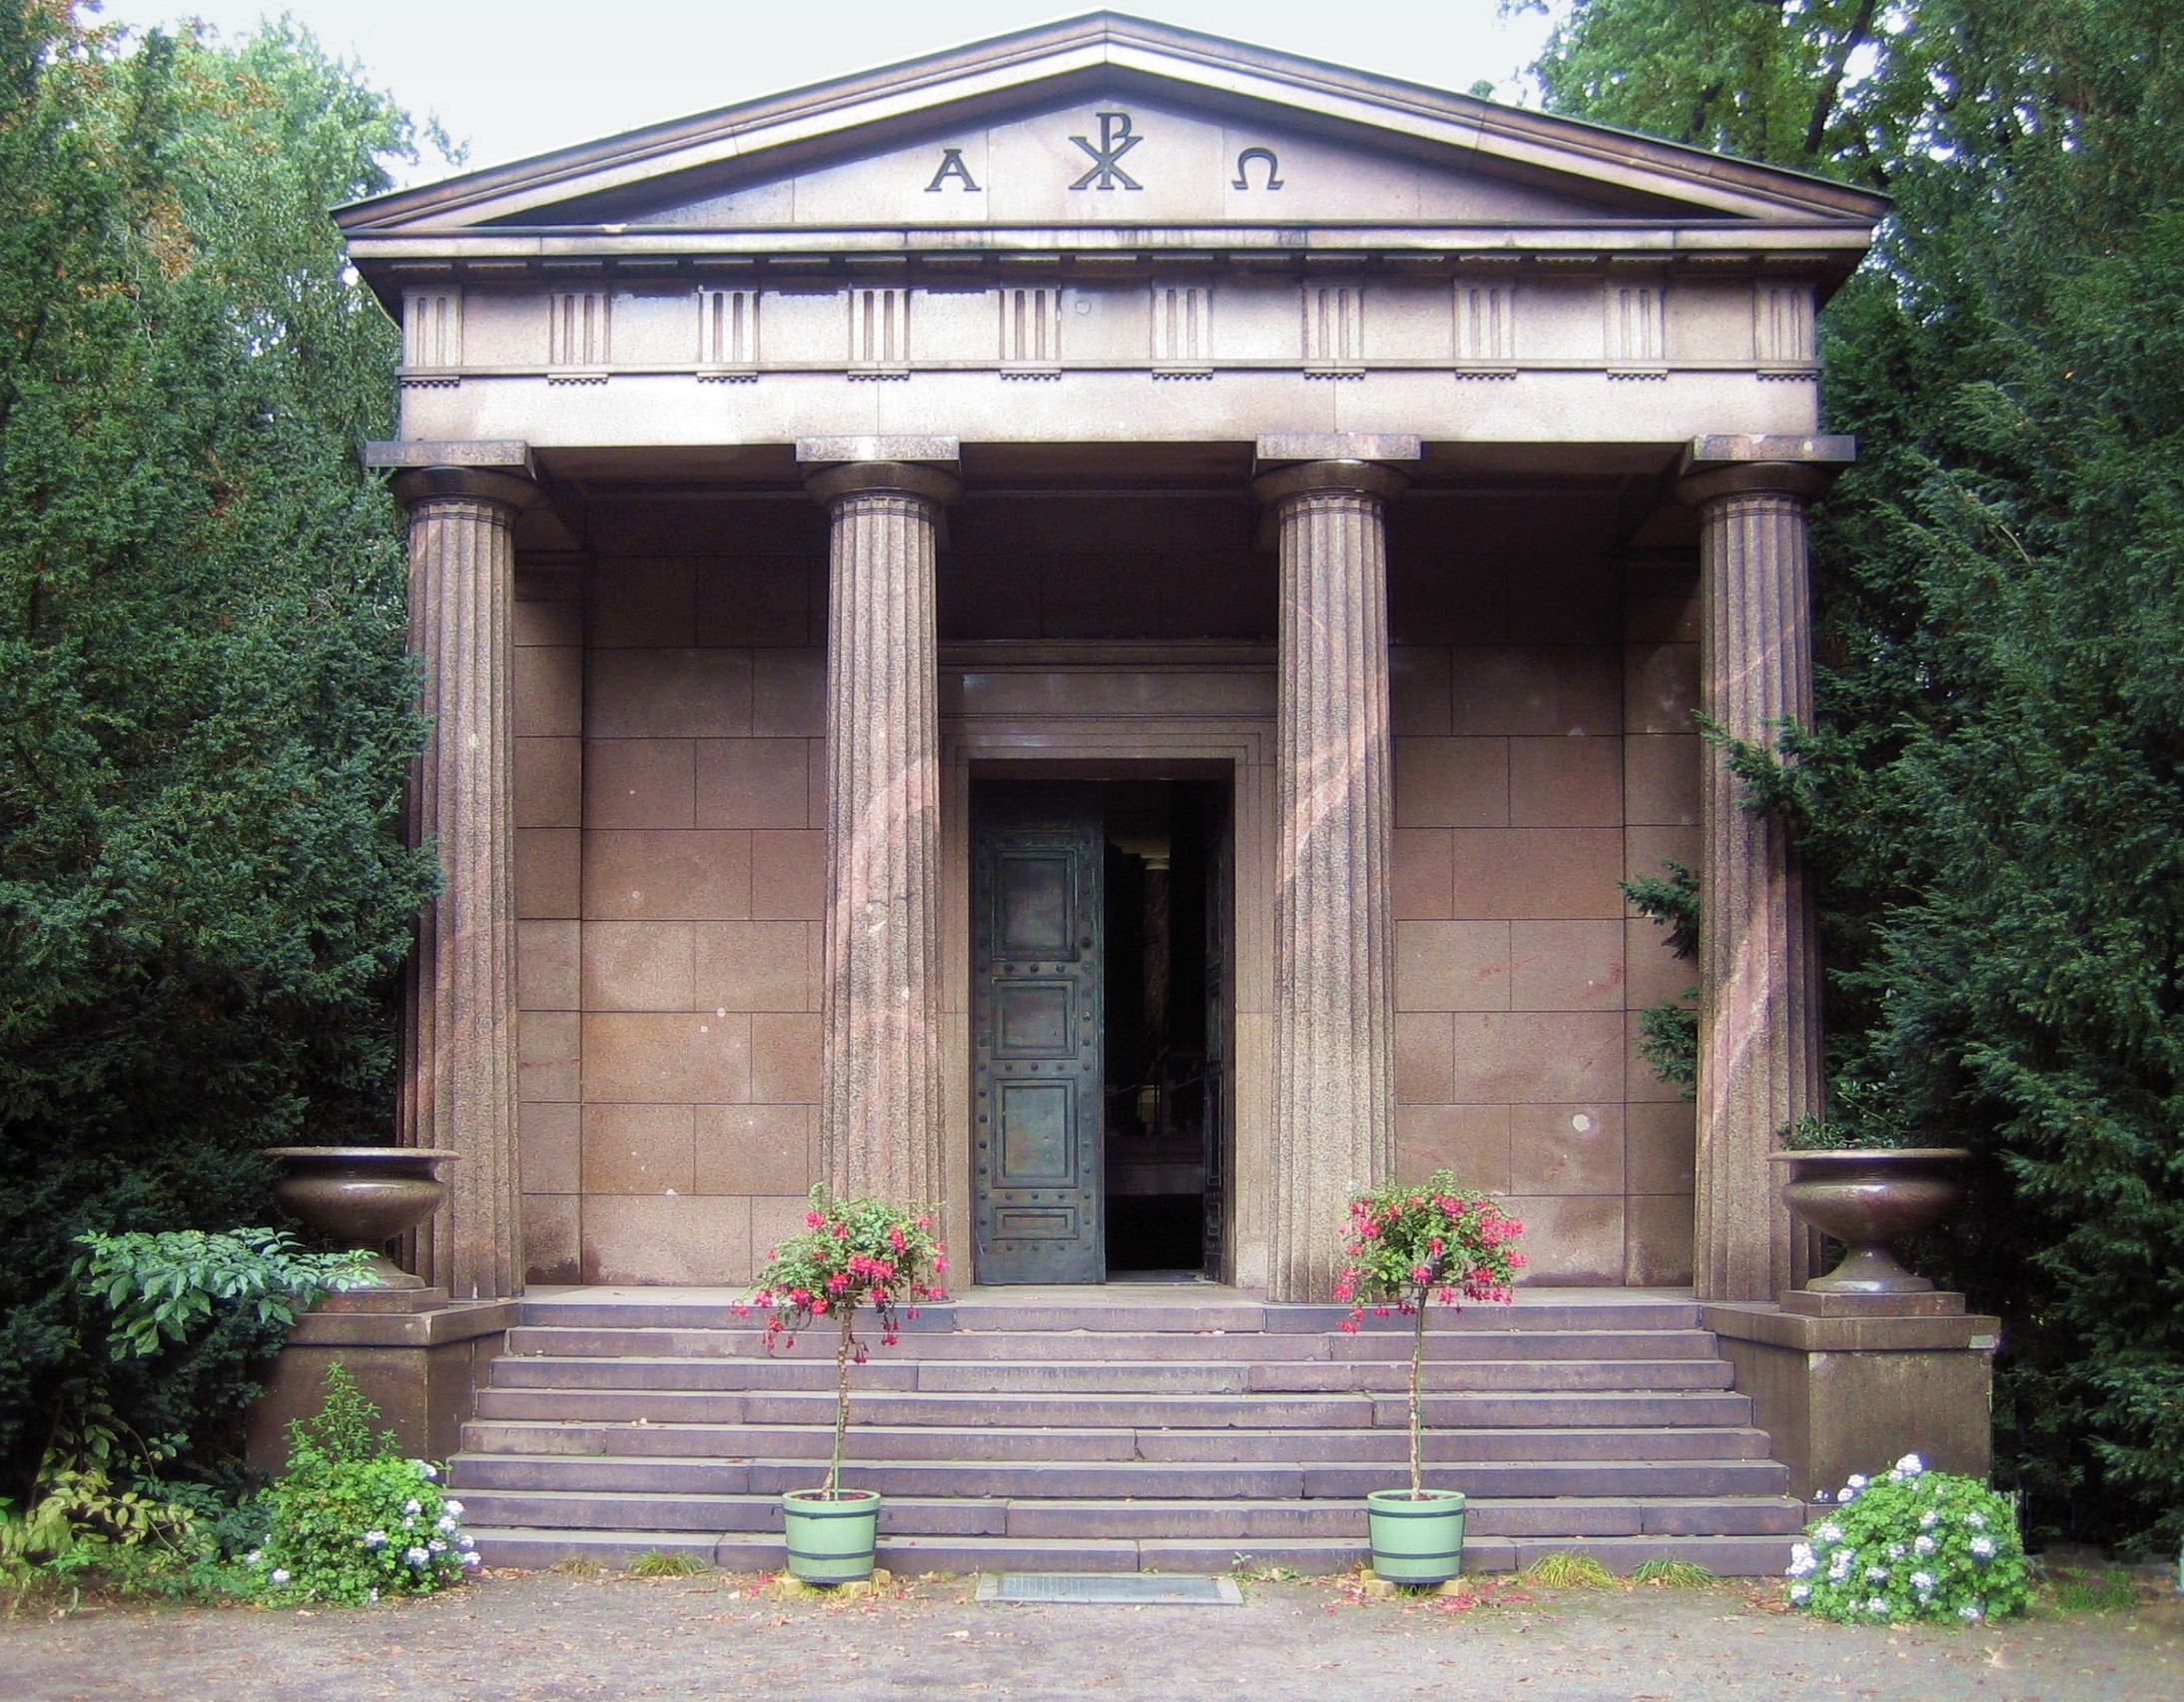 File:Berlin Mausoleum Charlottenburg 08.JPG - Wikimedia Commons